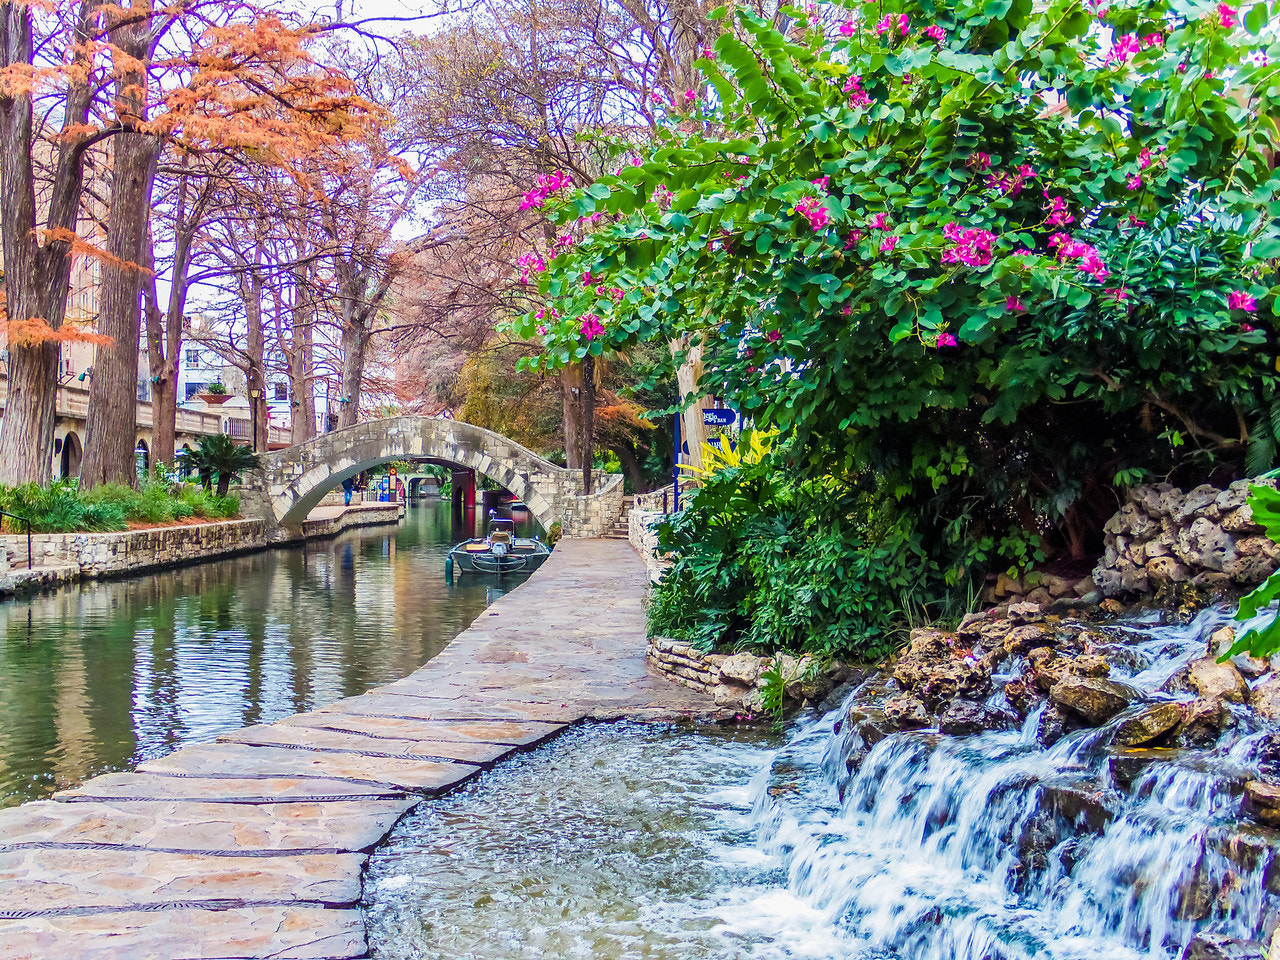 Photograph San Antonio Riverwalk in the Morning by Amy Moore on 500px